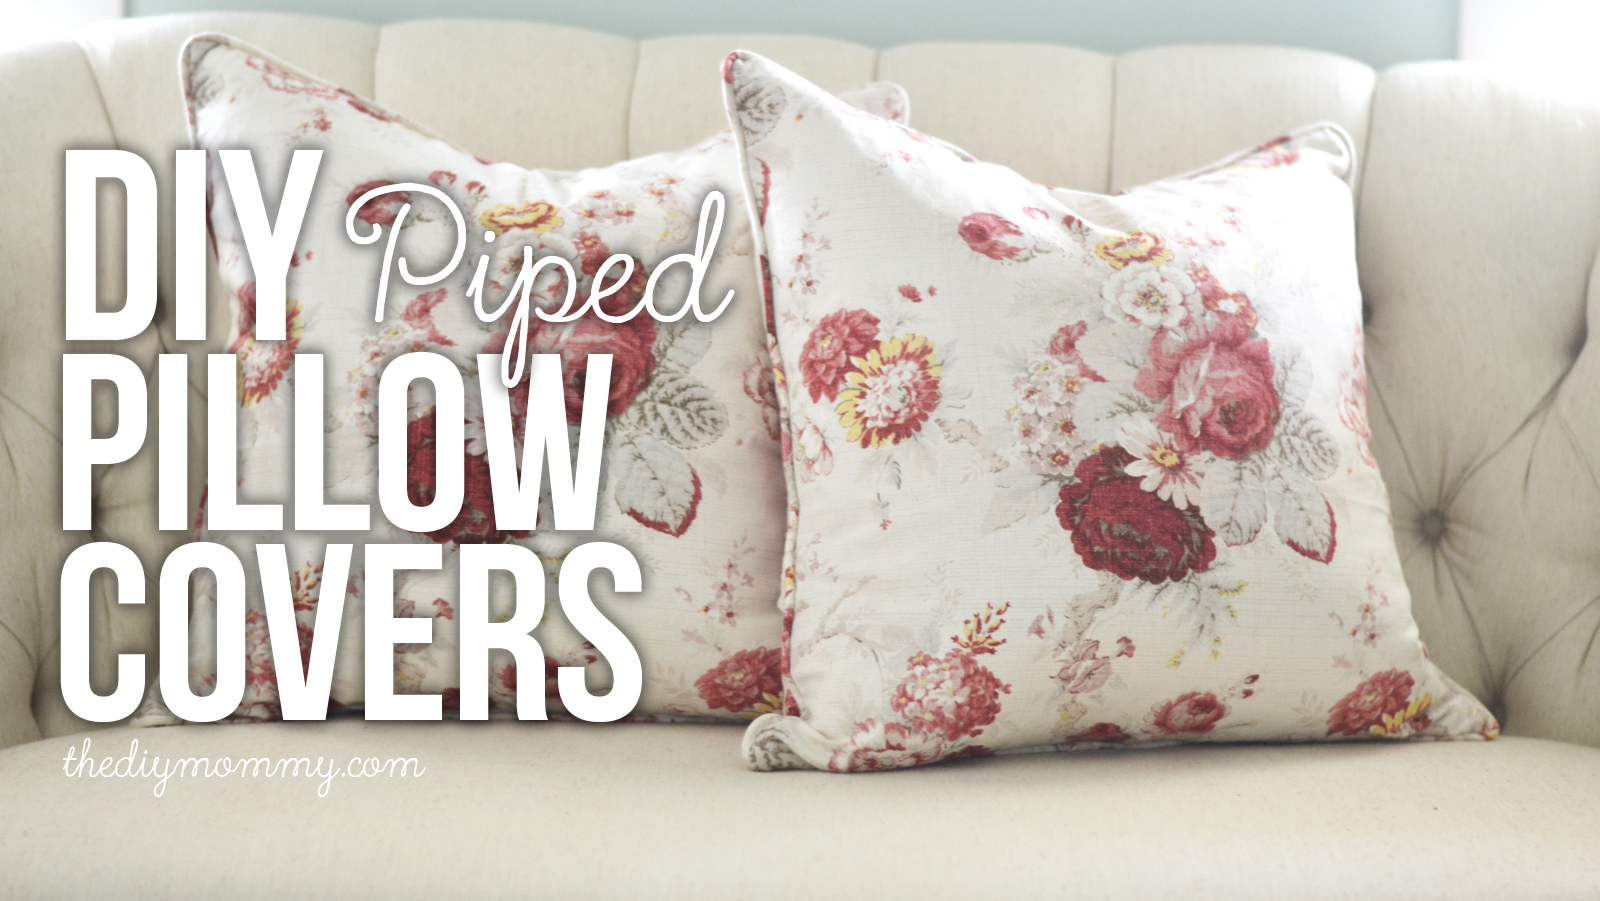 How To Make Zippered Throw Pillow Covers : Sew a Piped & Zippered Pillow Cover (Video Tutorial) The DIY Mommy